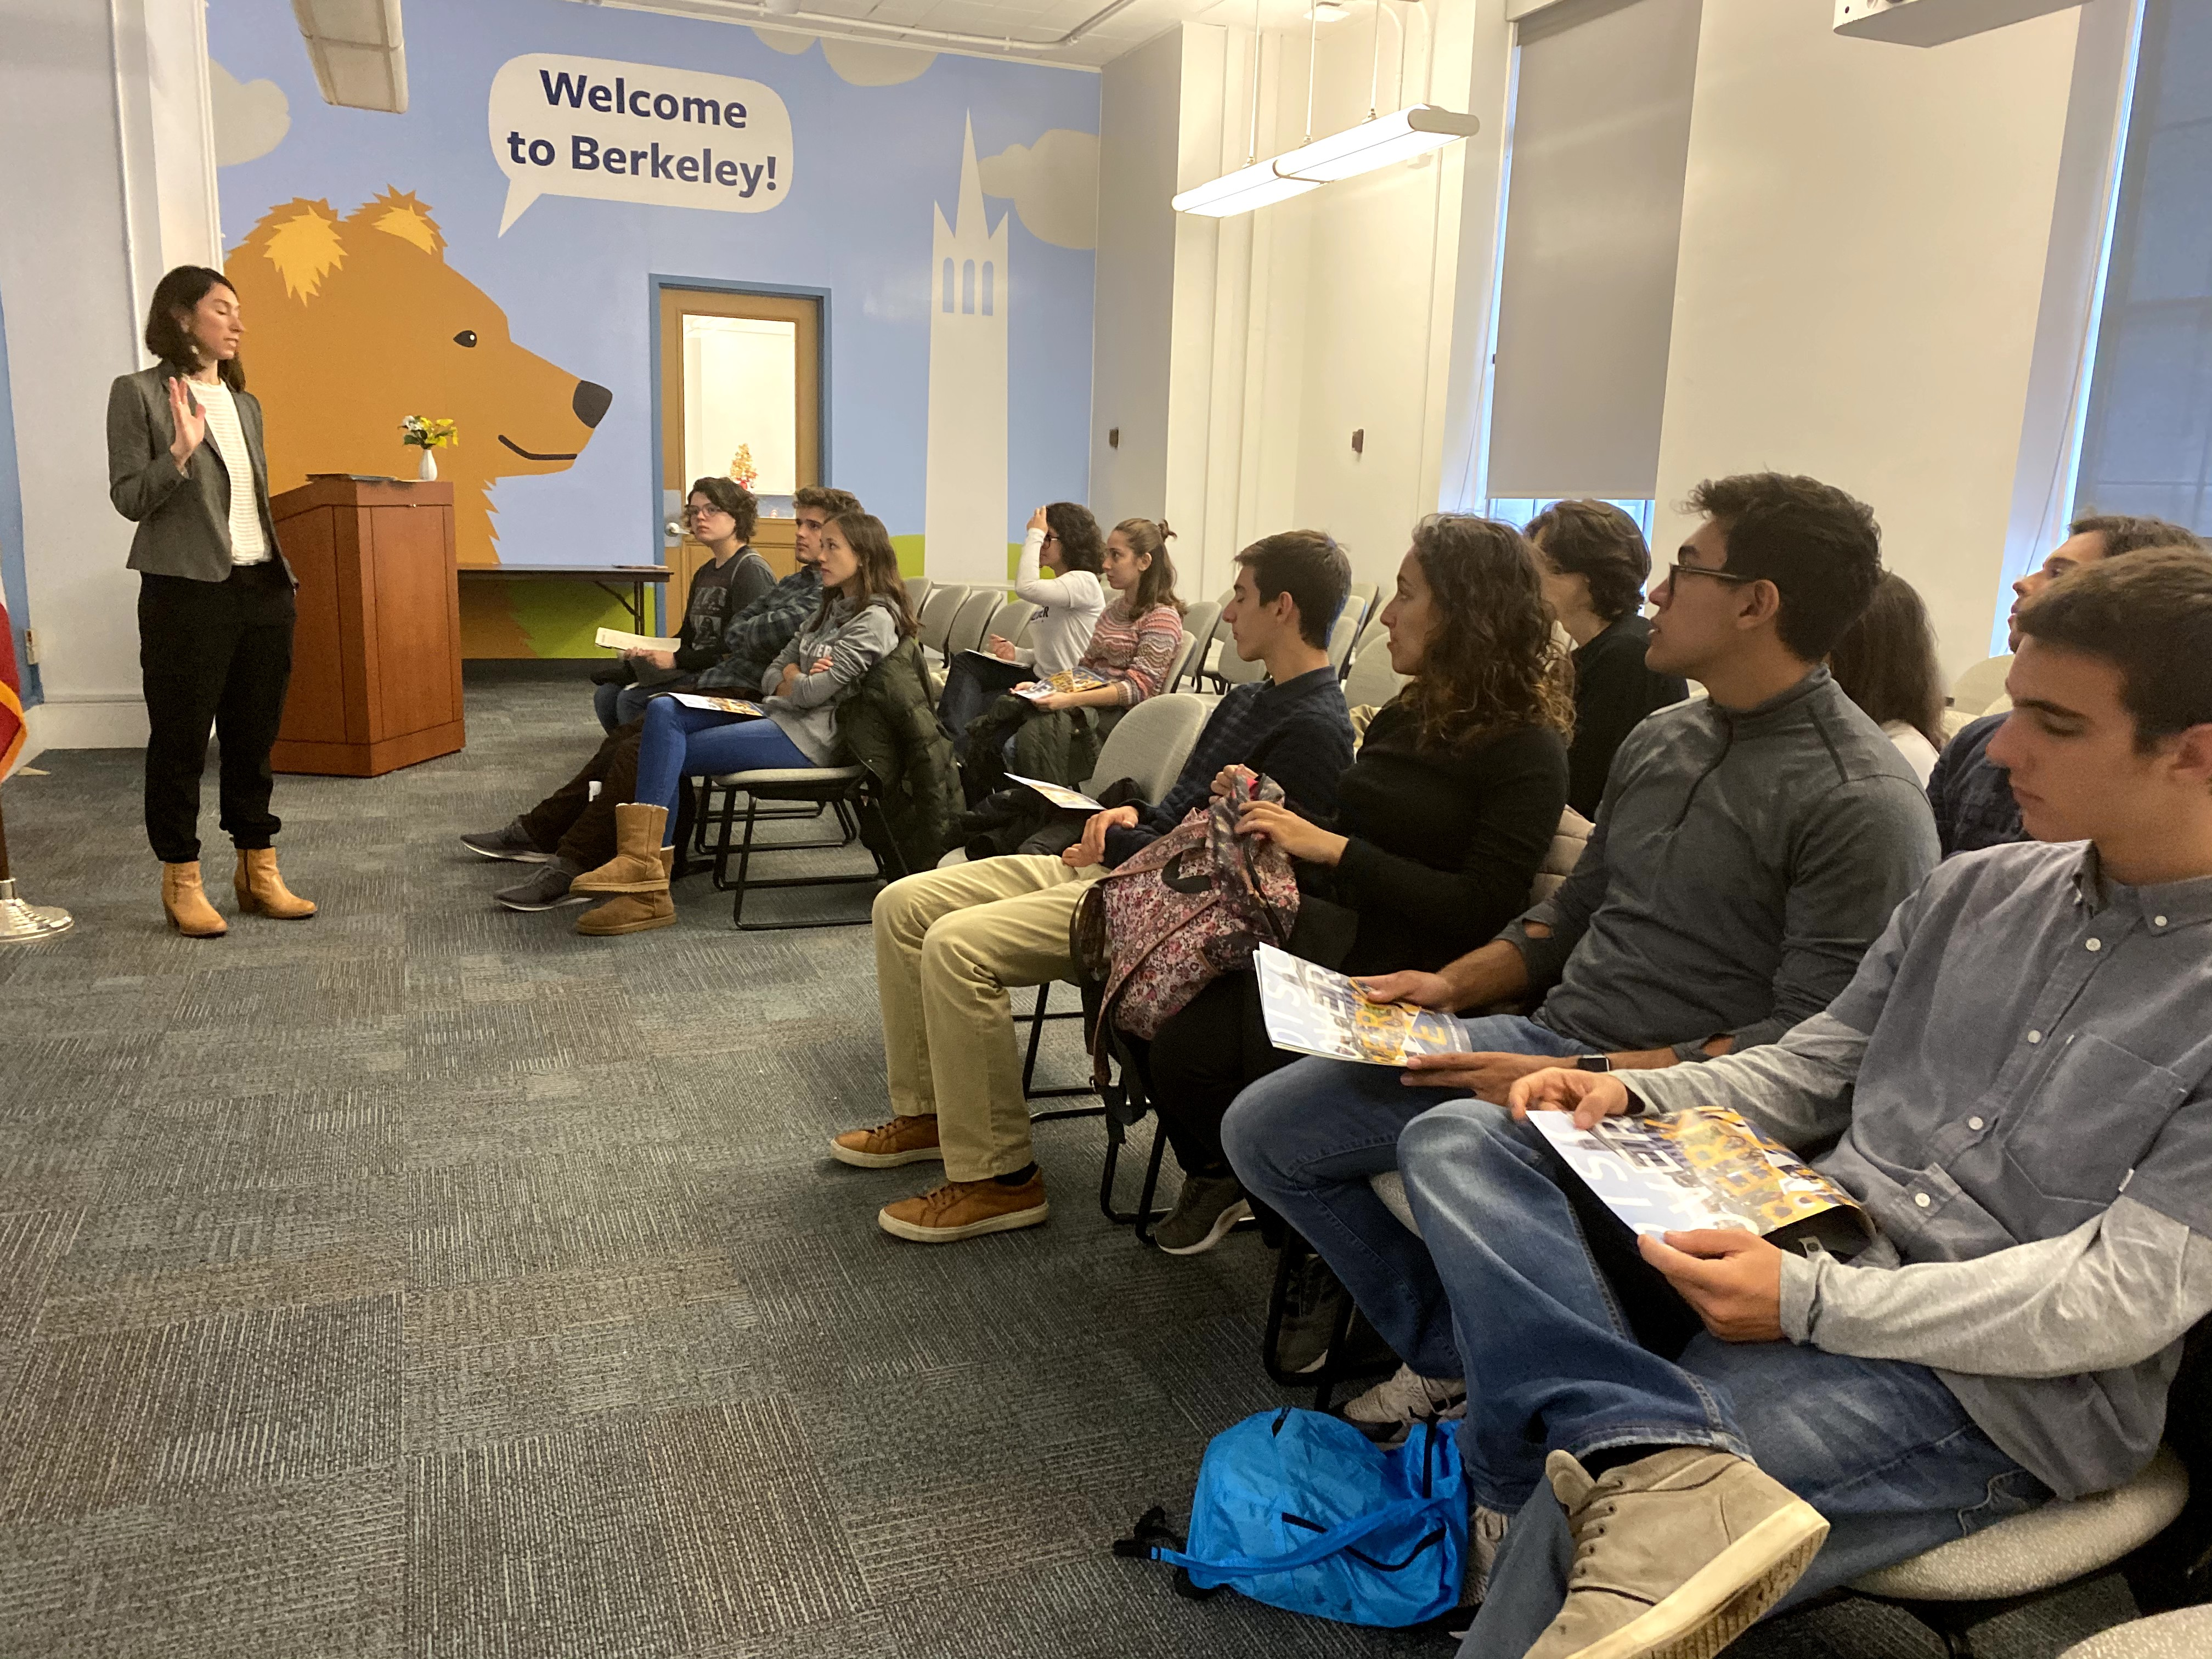 Our students listen to Marcia Breslin-Cantillana, assistant Director of Admissions at UC Berkeley